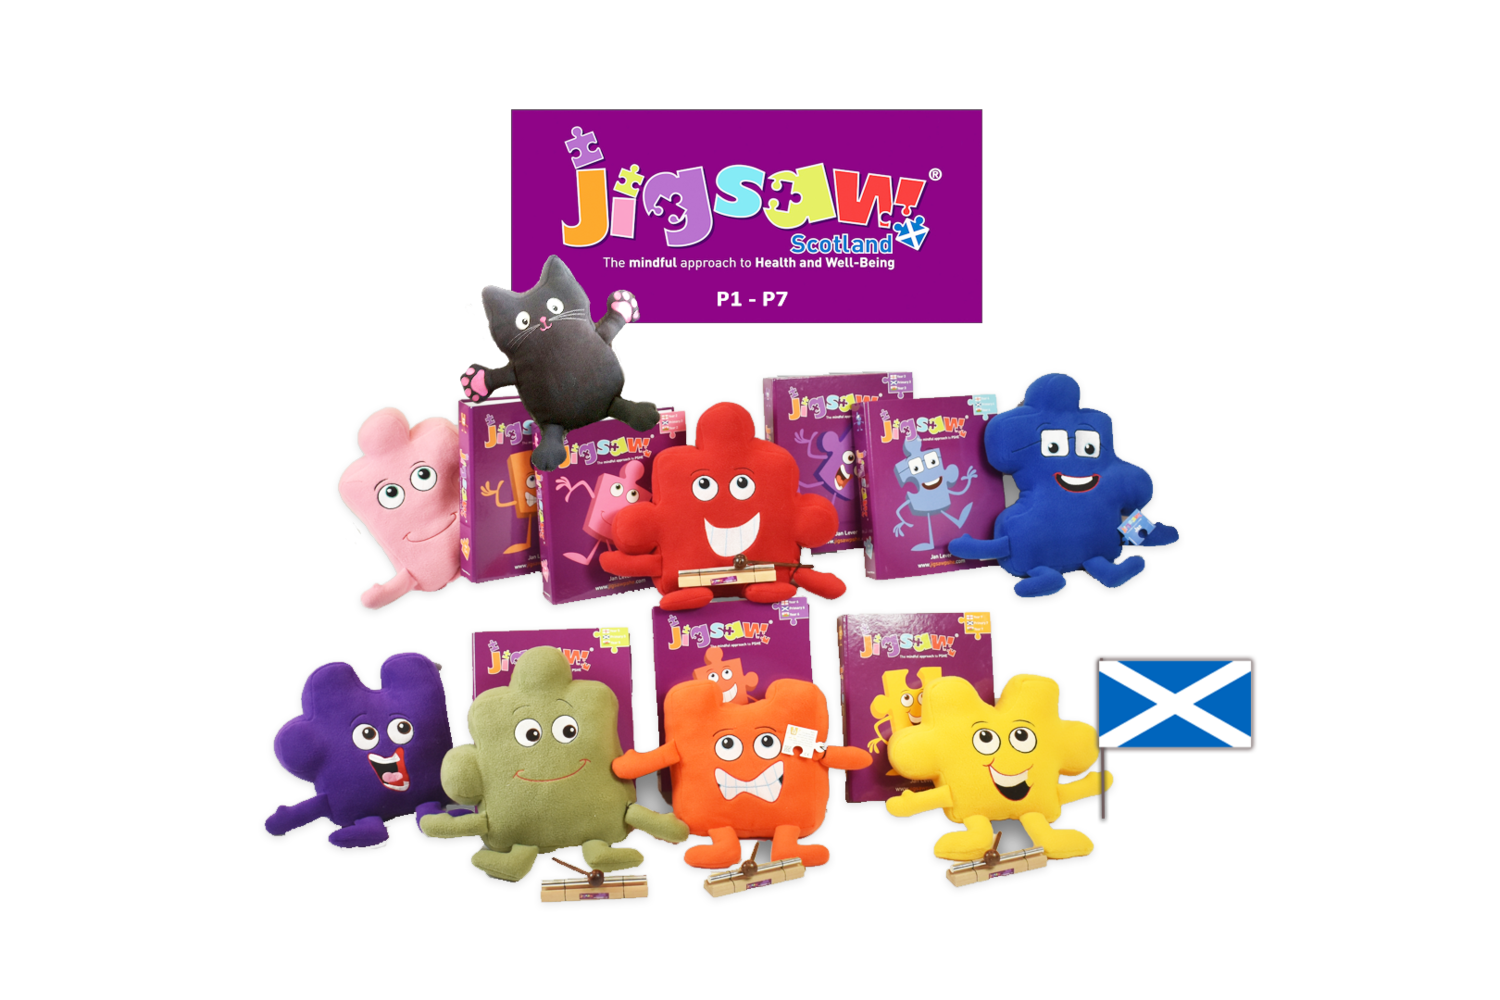 Jigsaw Whole Primary School Set (ages 5-12) for Scotland